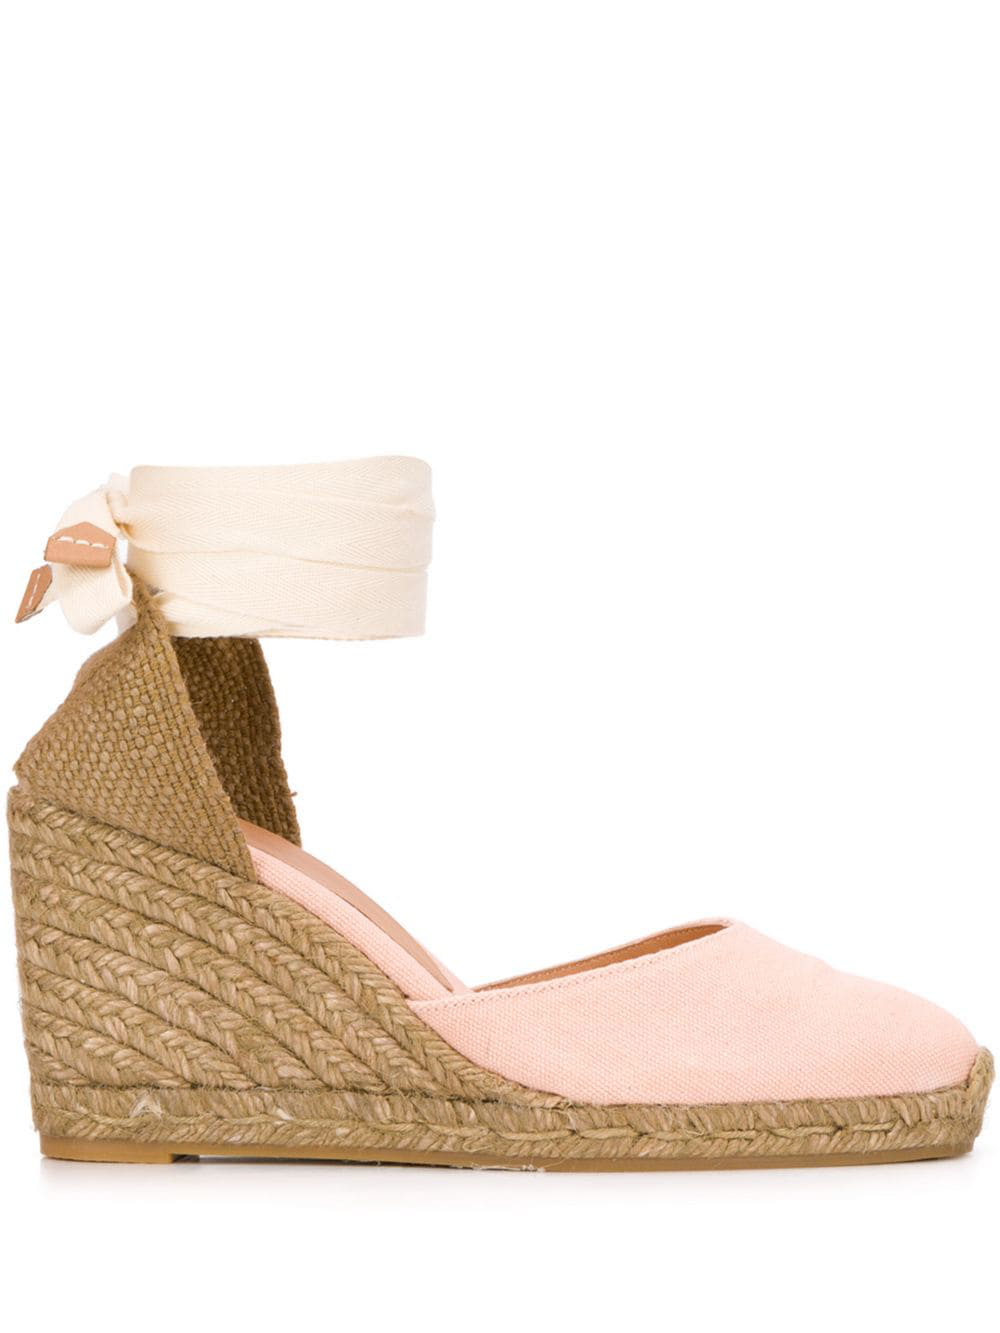 1b0a785335c5 Pink and beige cotton Carina wedge espadrilles from Castañer featuring a  round neck